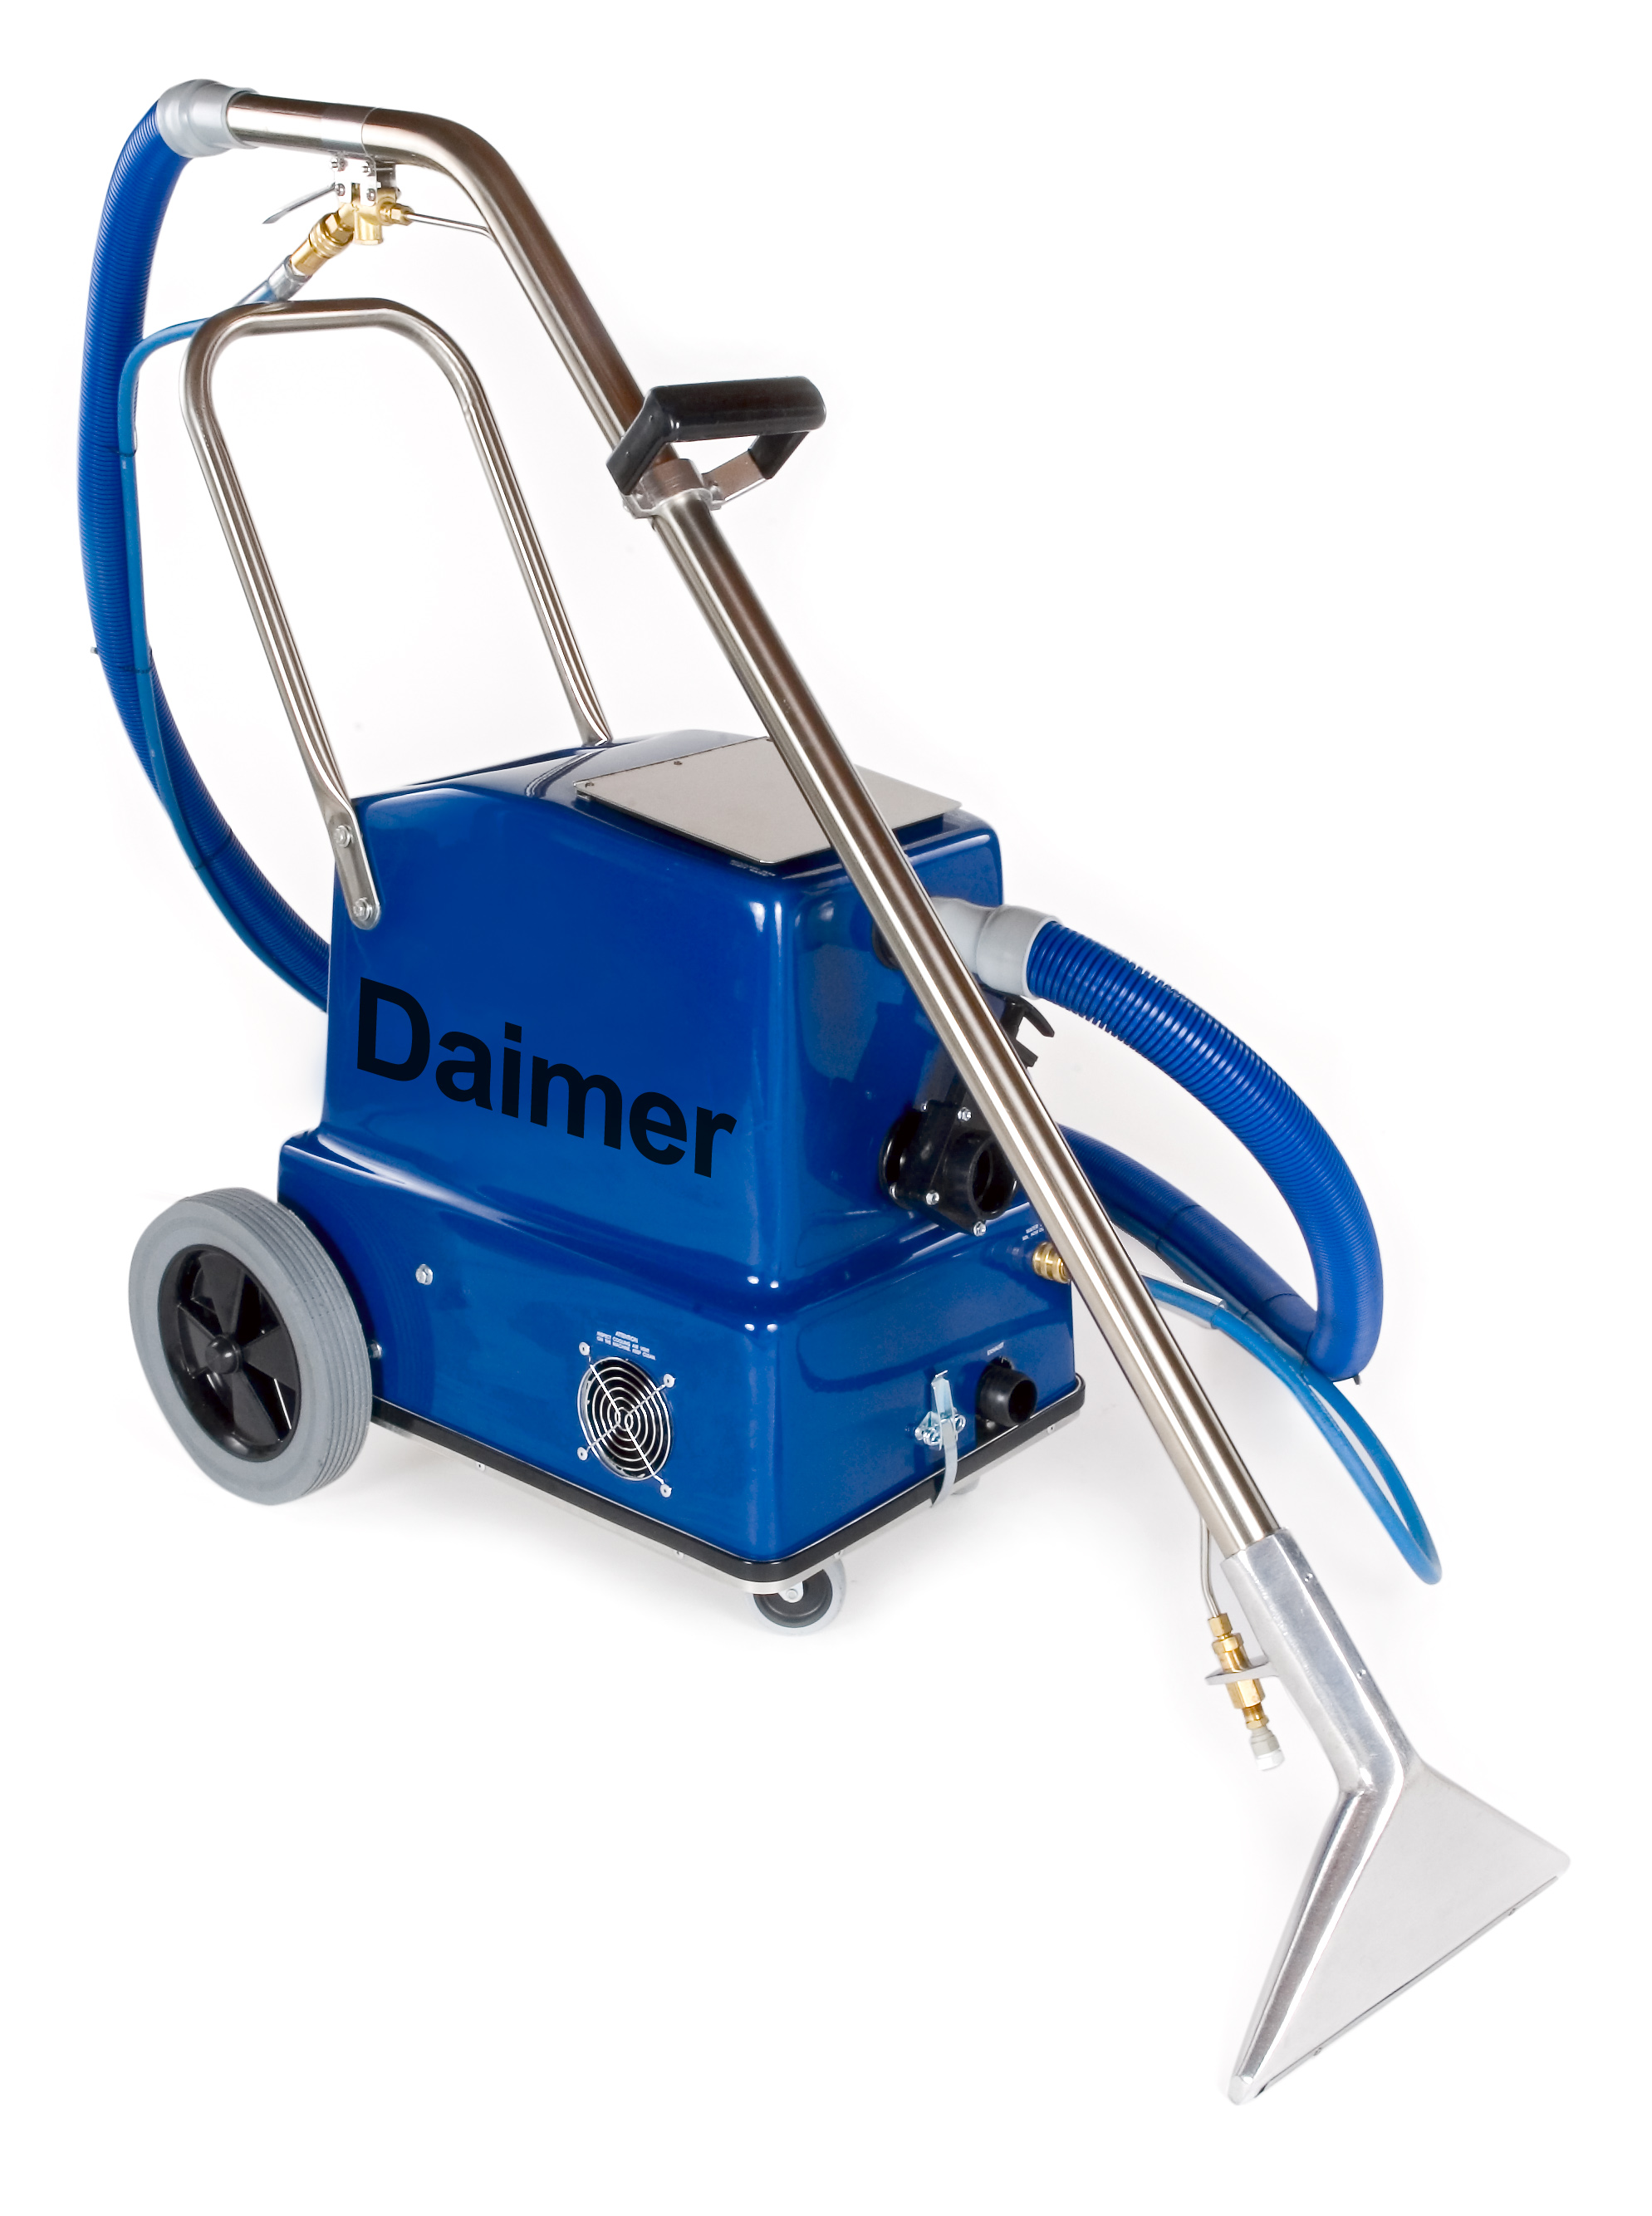 Carpet Cleaners From Daimer Offer Value And Power - Best steam cleaning system